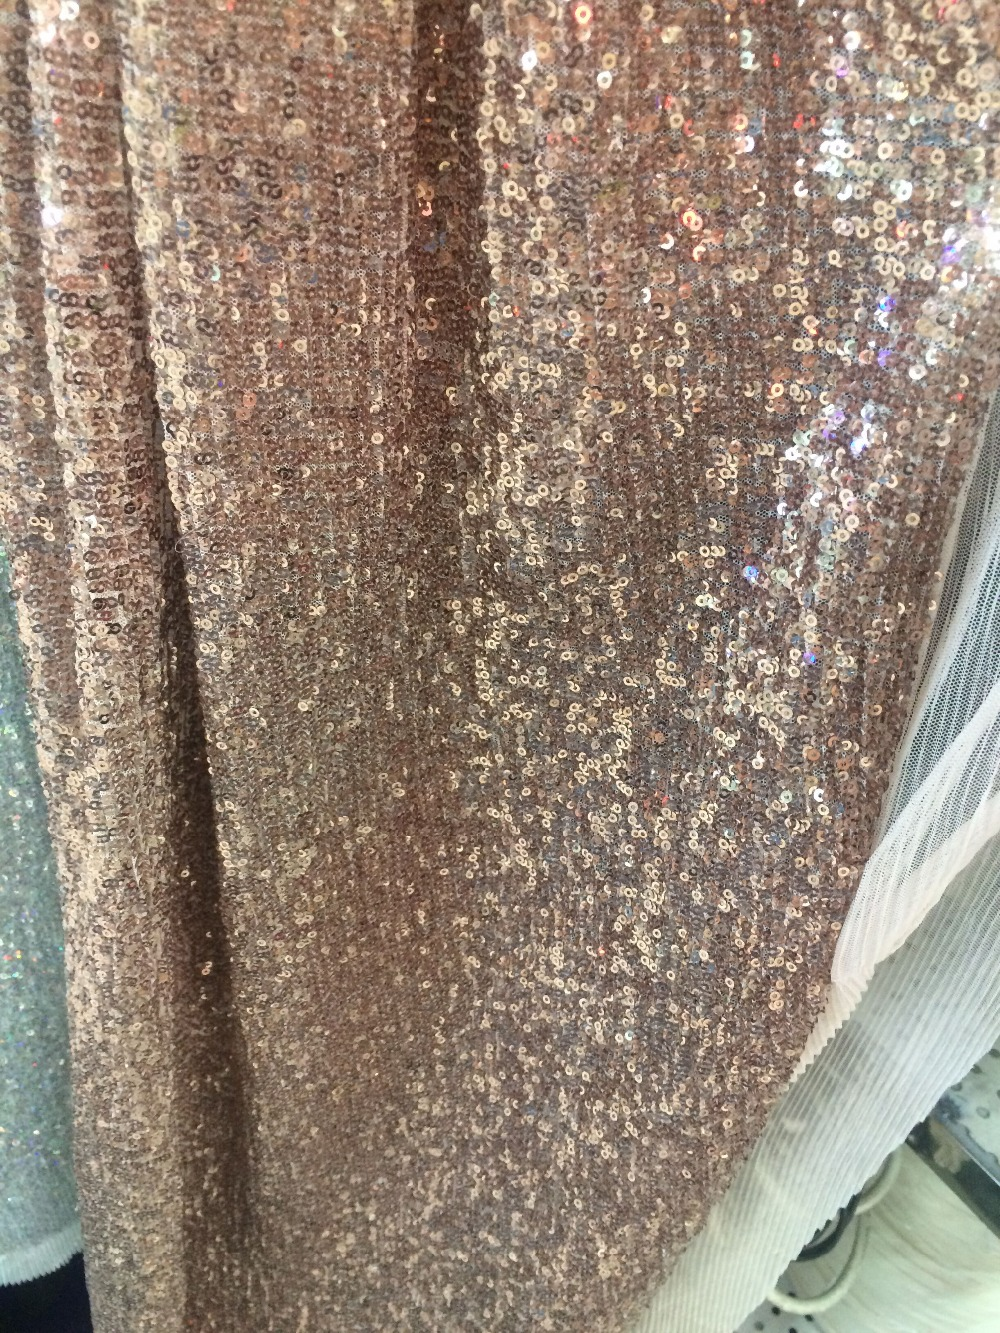 New Arrival African Sequins Fabric LJY 82751 For Nigerian Wedding Dress Hot Selling-in Lace from Home & Garden    2